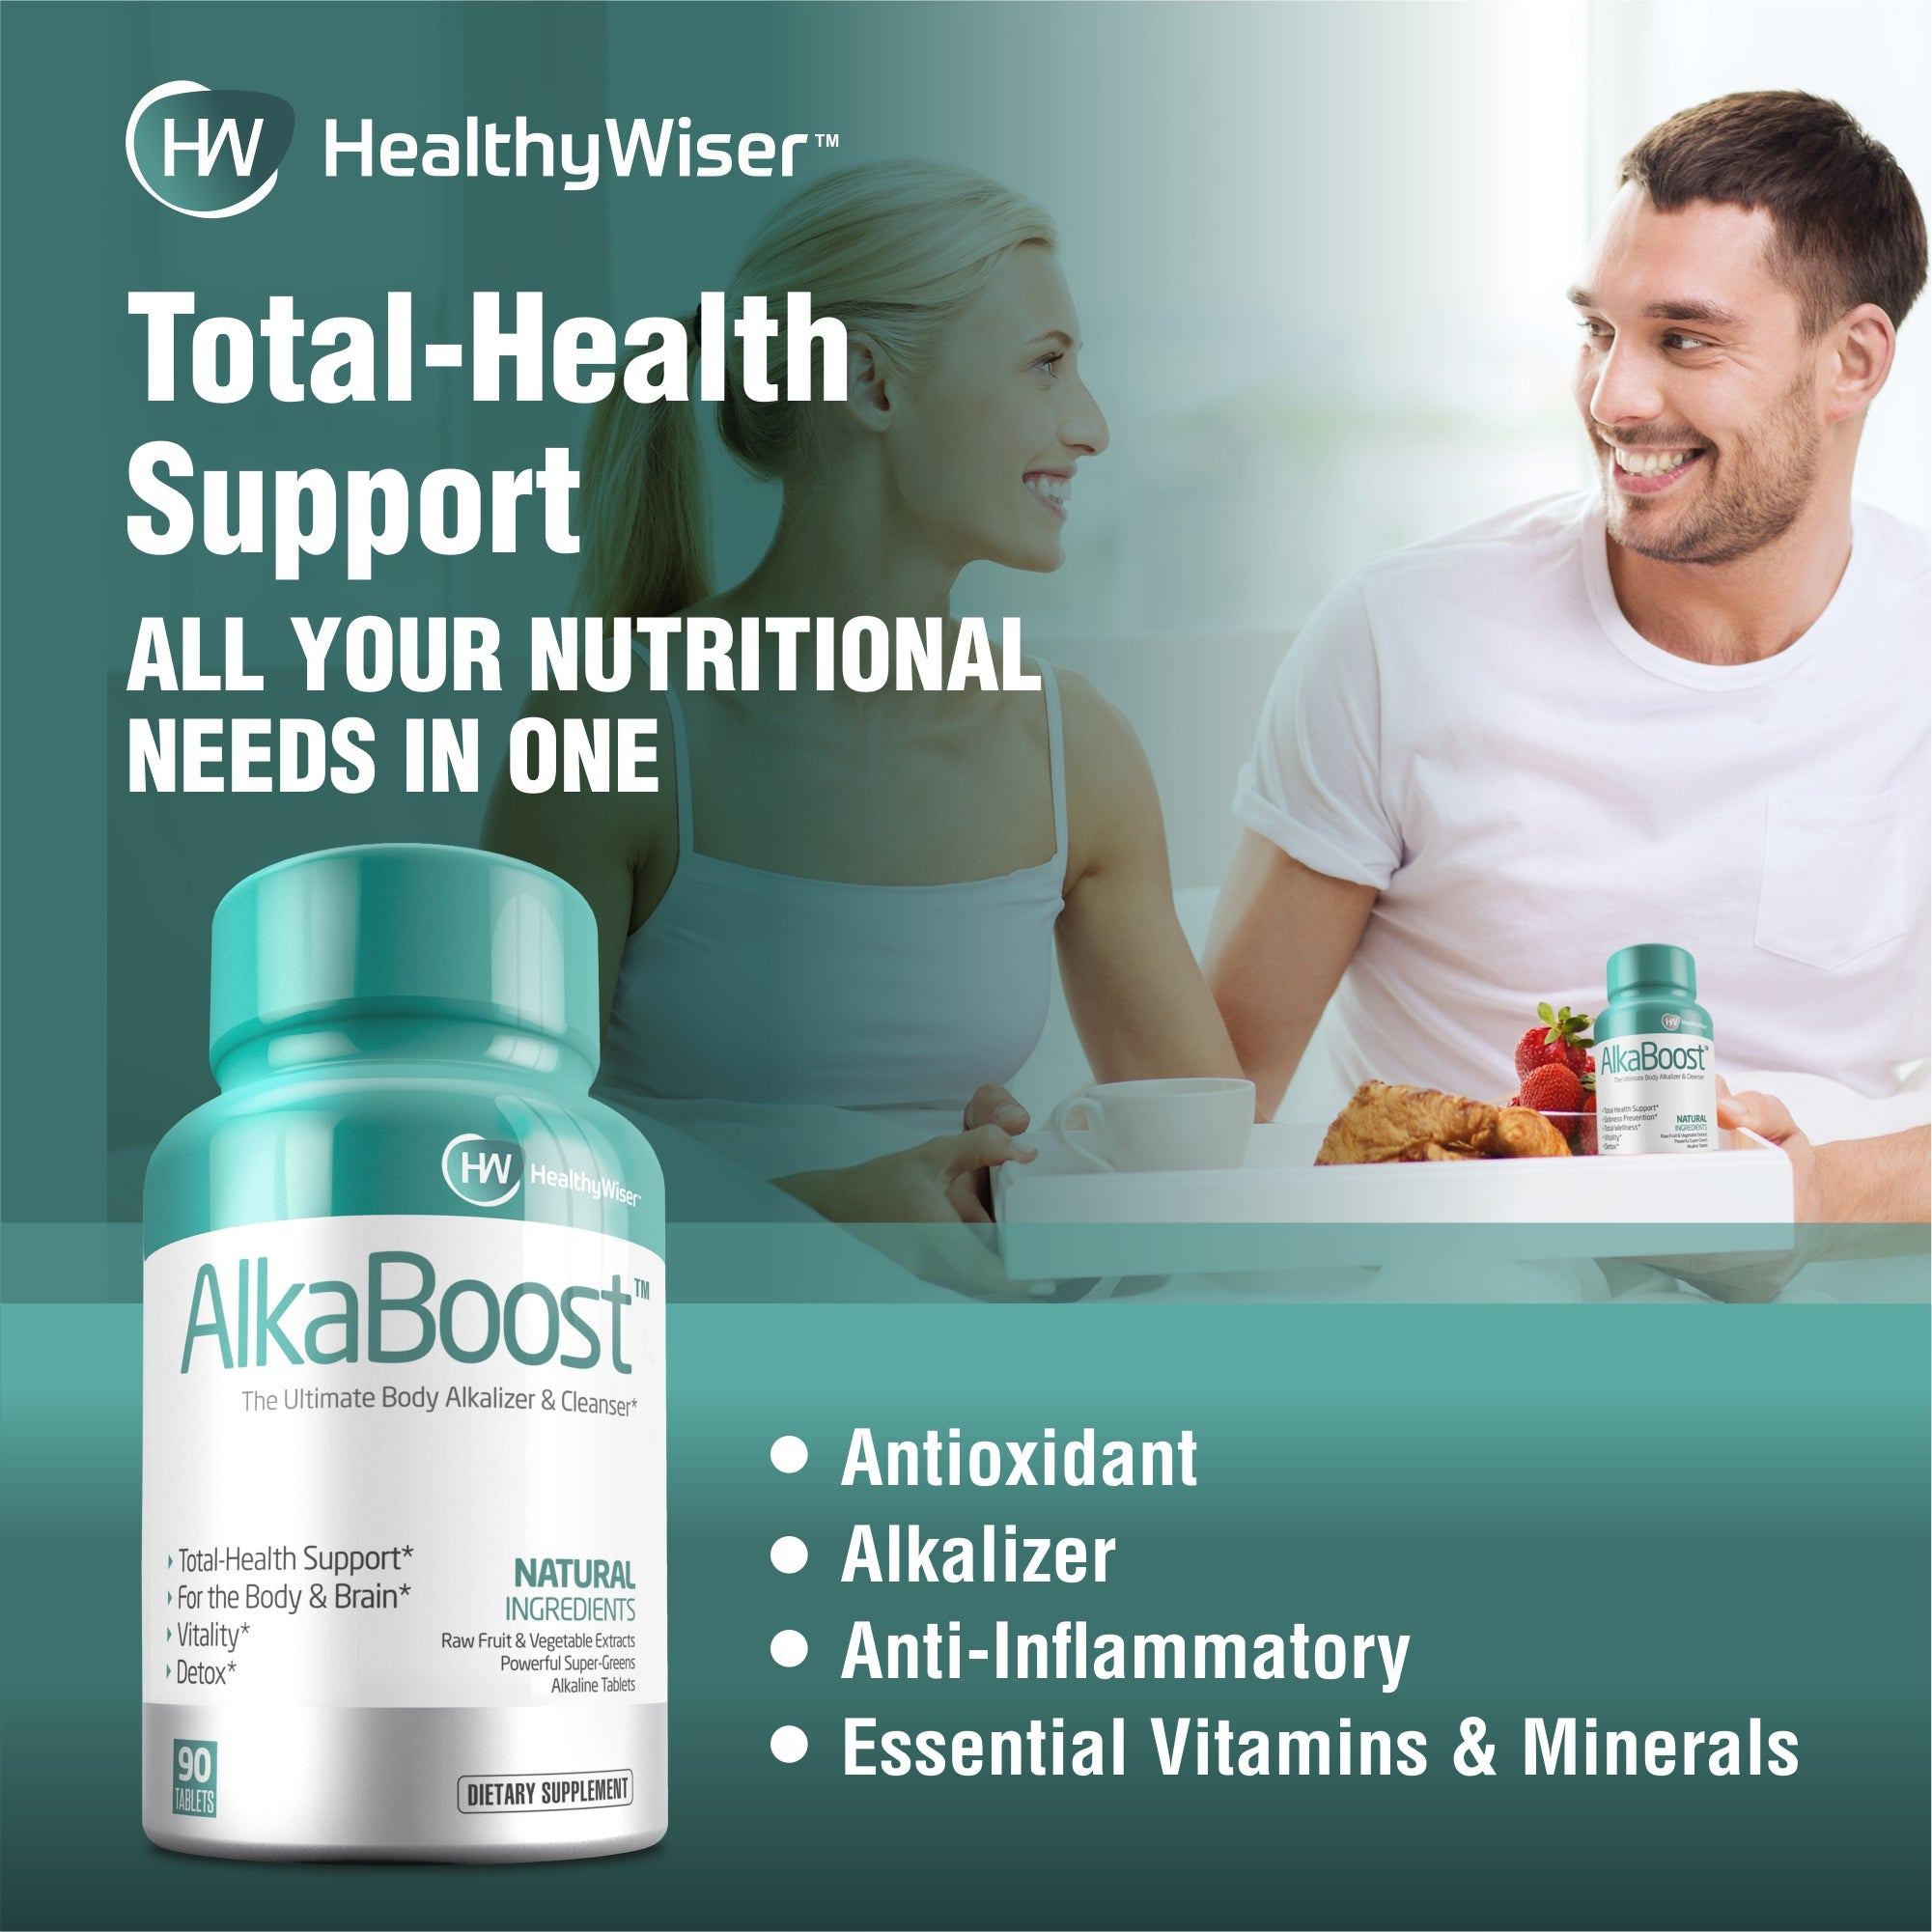 0AlkaBoost™ MultiVitamin For Healthy pH Balance, Alkaline Booster & Immune System Support. Natural Detox & Sickness Prevention - Promotes Energy Clarity and Focus - Green and Wholefood Blend, 90ct